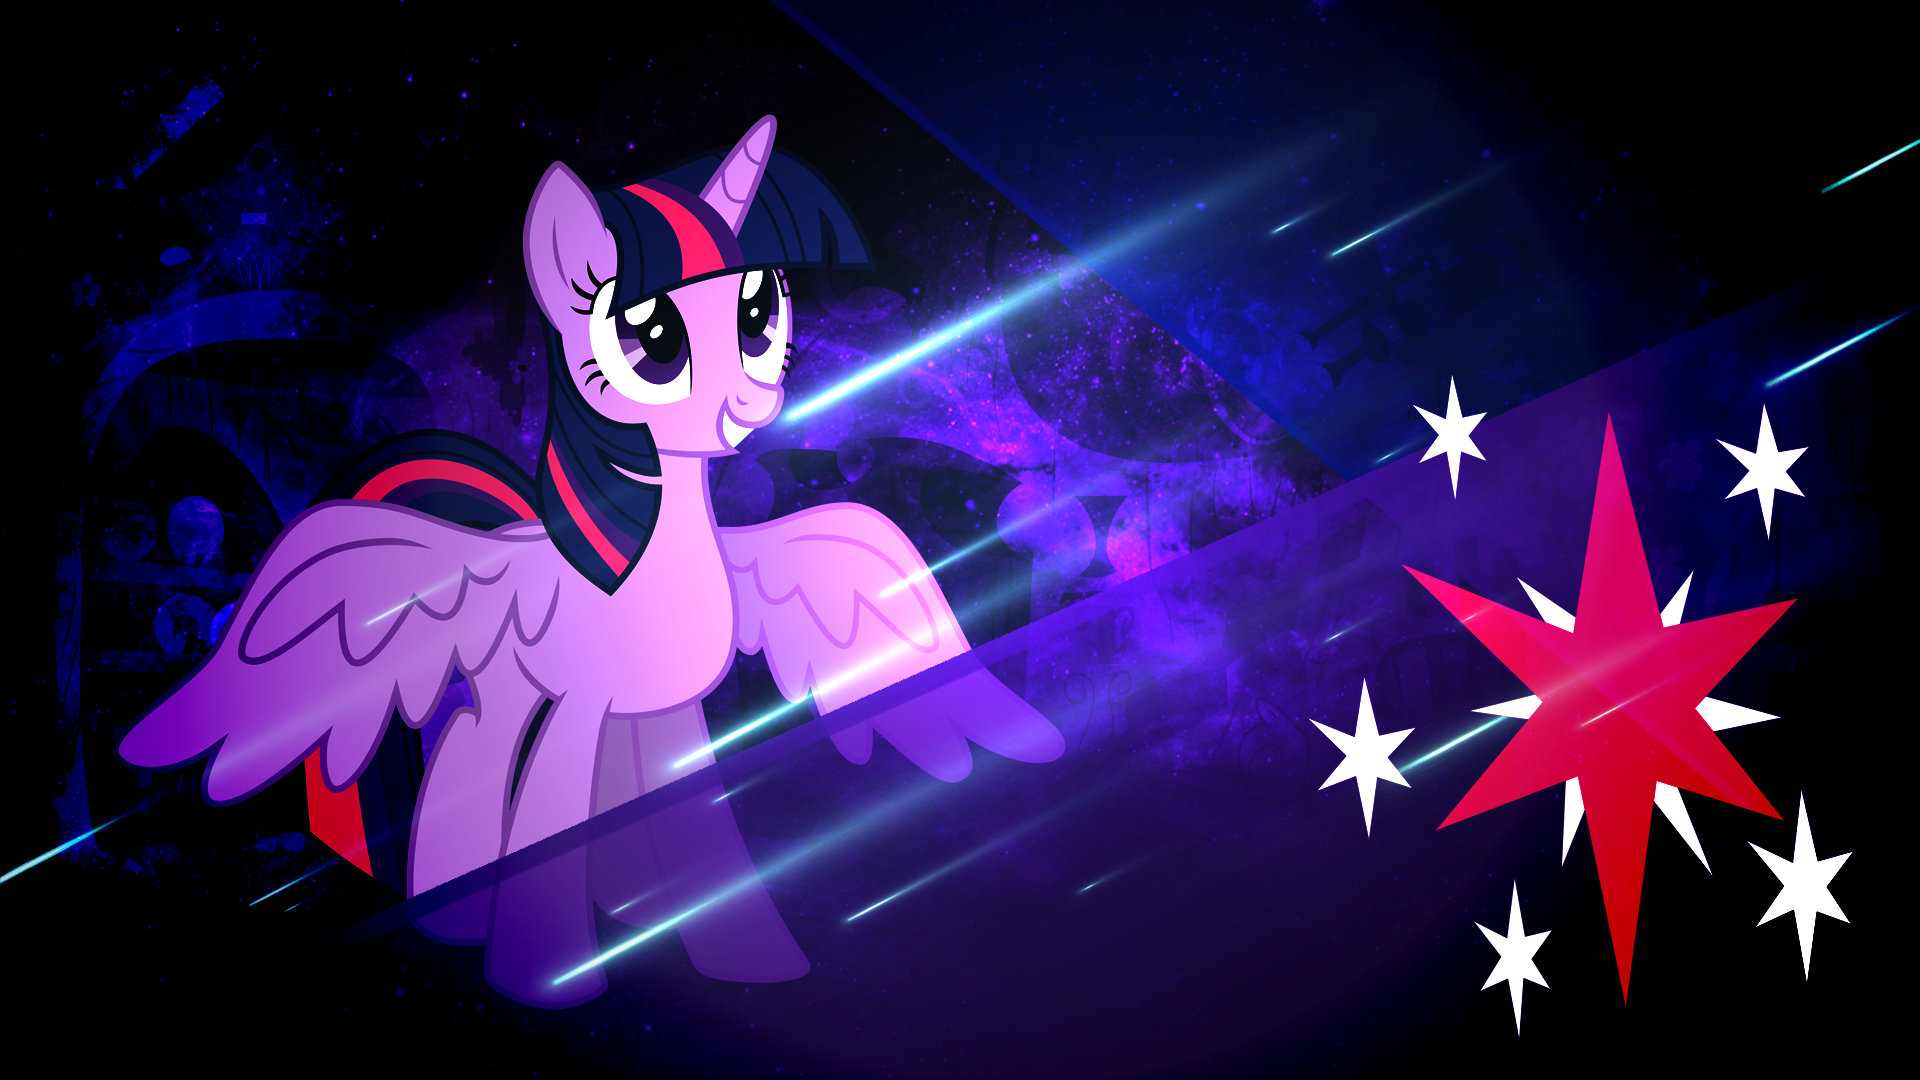 Twilight Sparkle Wallpapers Beautiful Twilight Sparkle